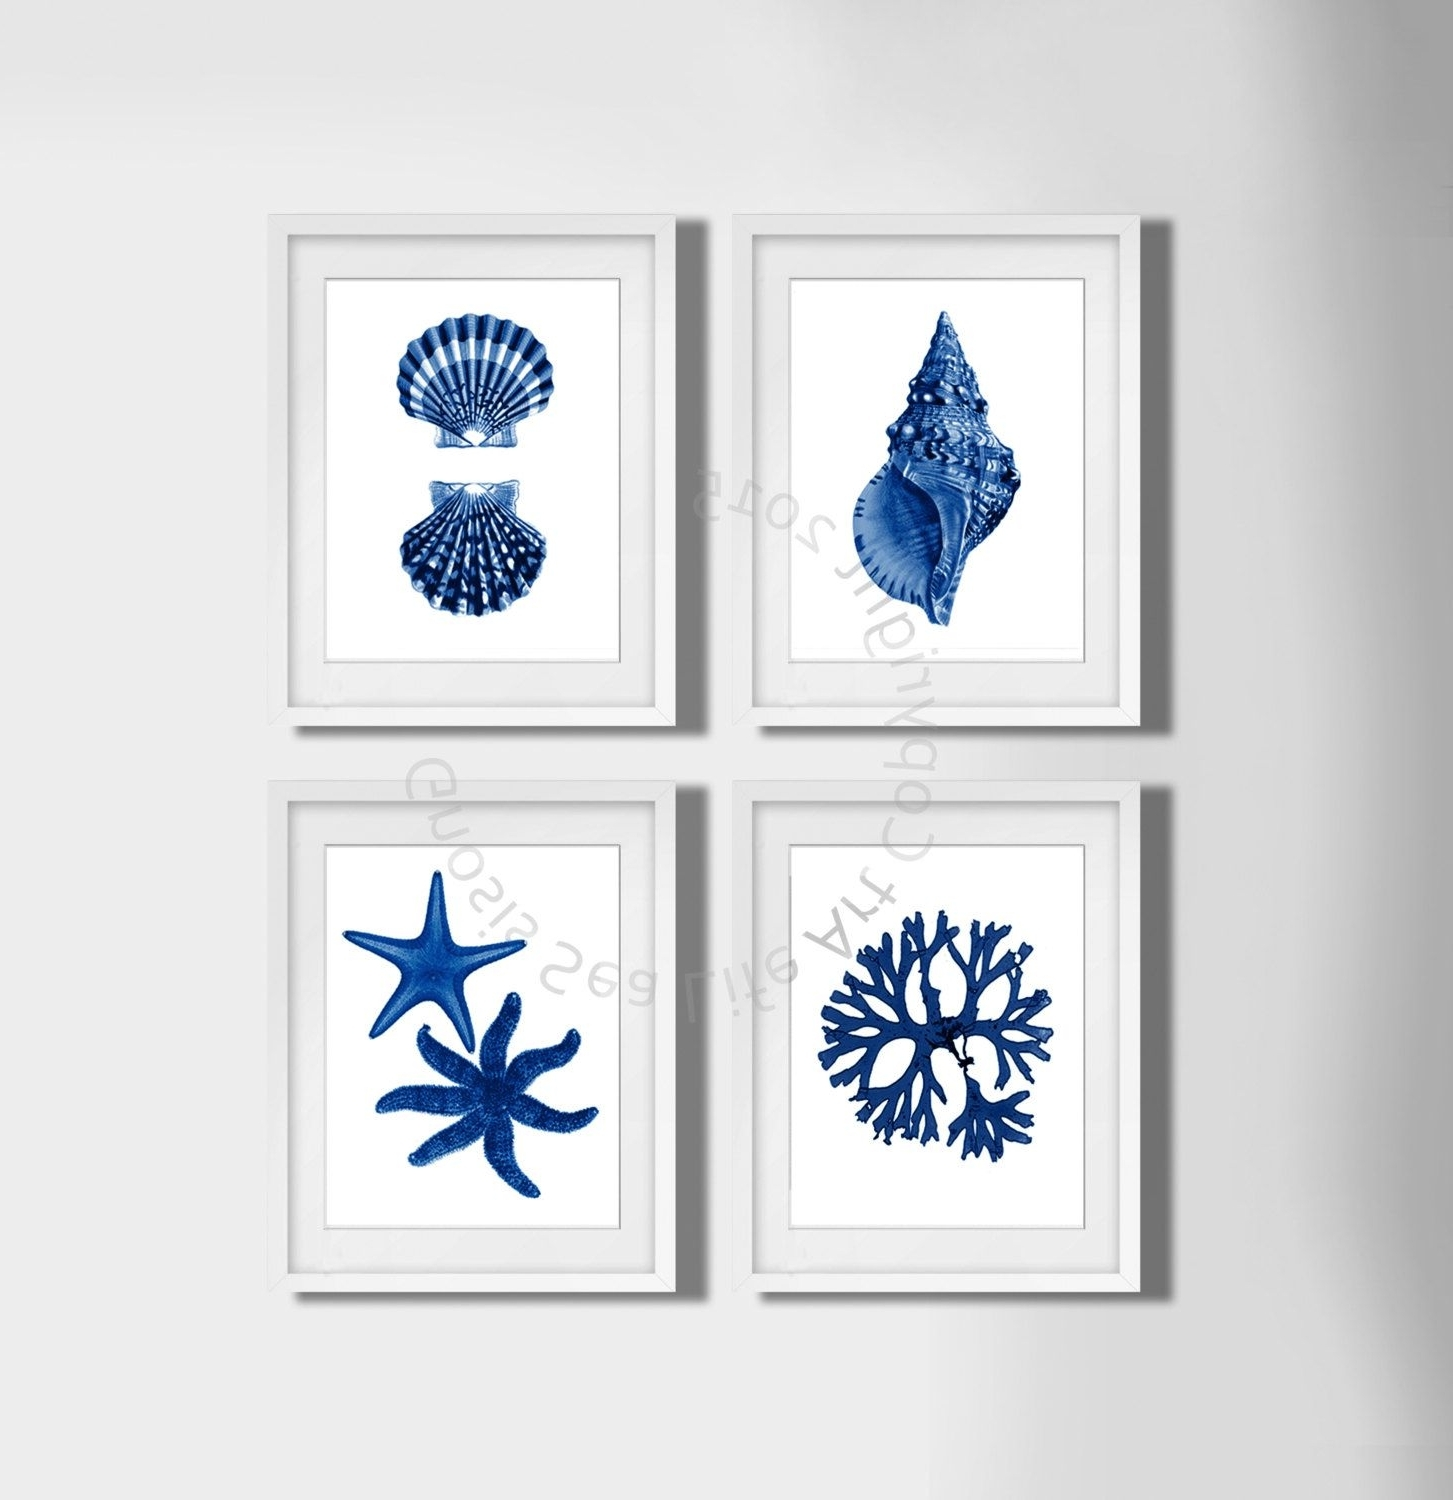 Navy Blue Wall Art For Well Known Coastal Wall Decor, Navy Blue Wall Art Set Of 4 Beach Decor (View 10 of 15)